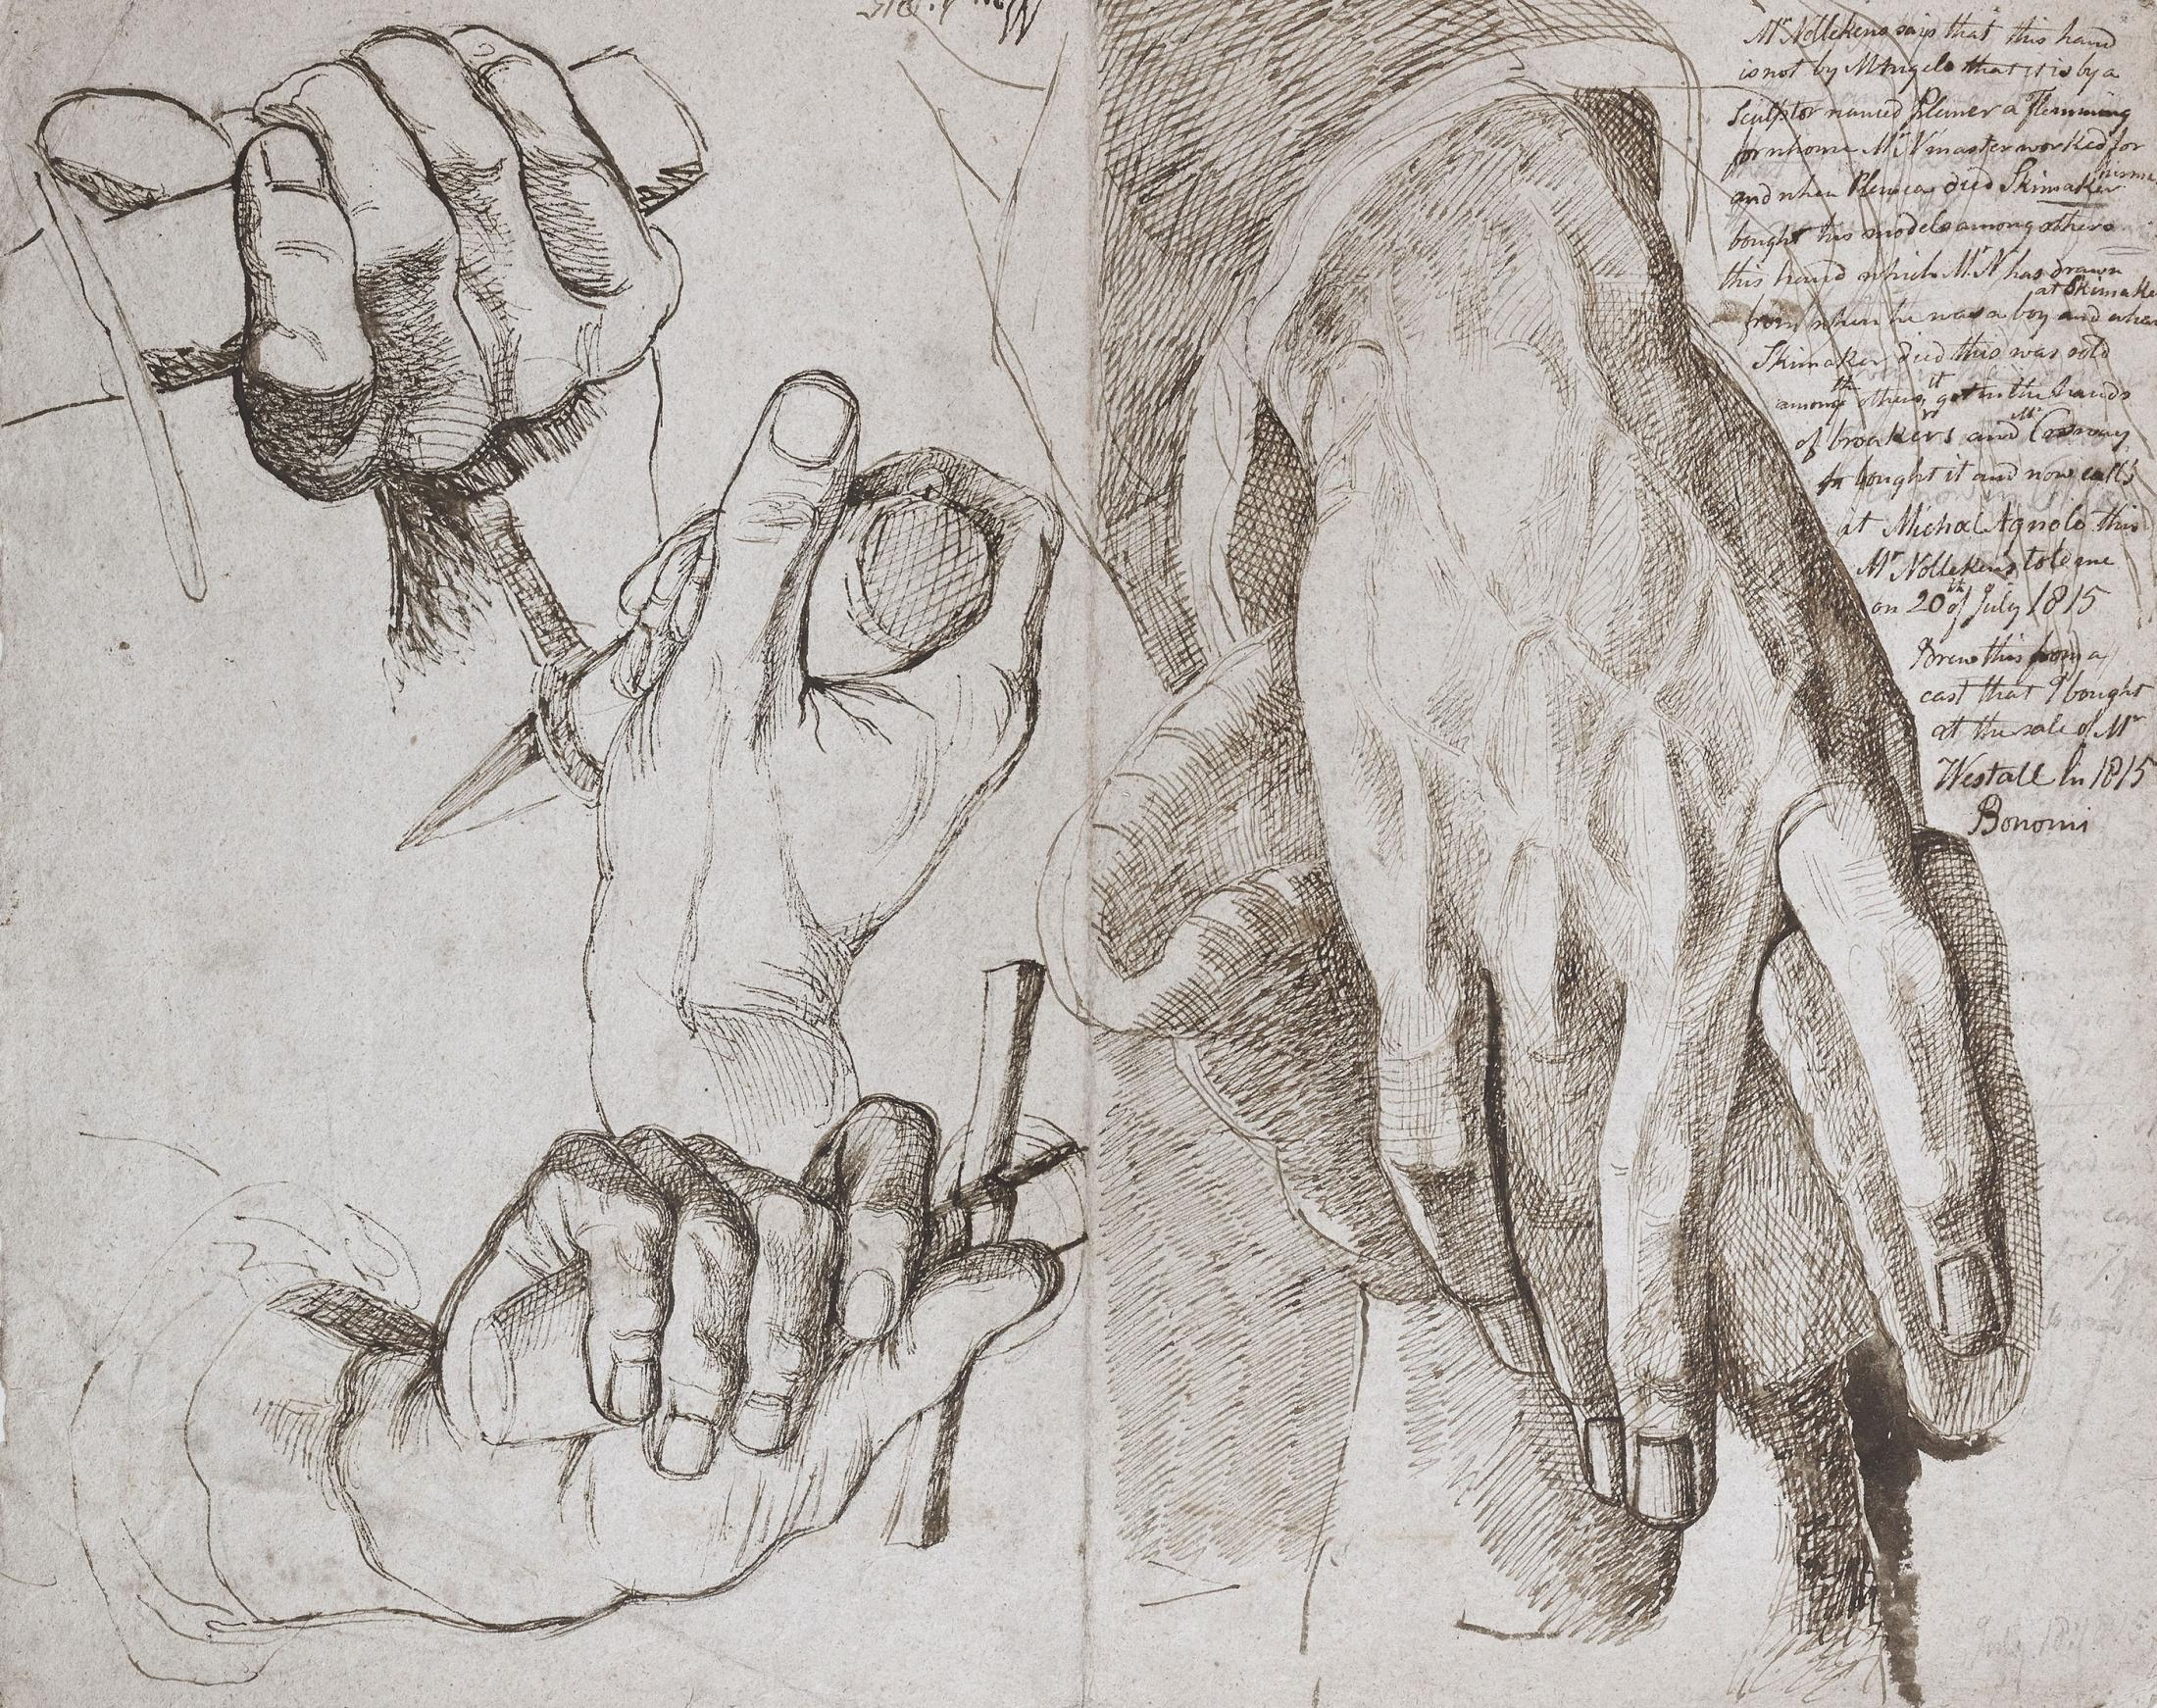 Study of a sculptor's hand